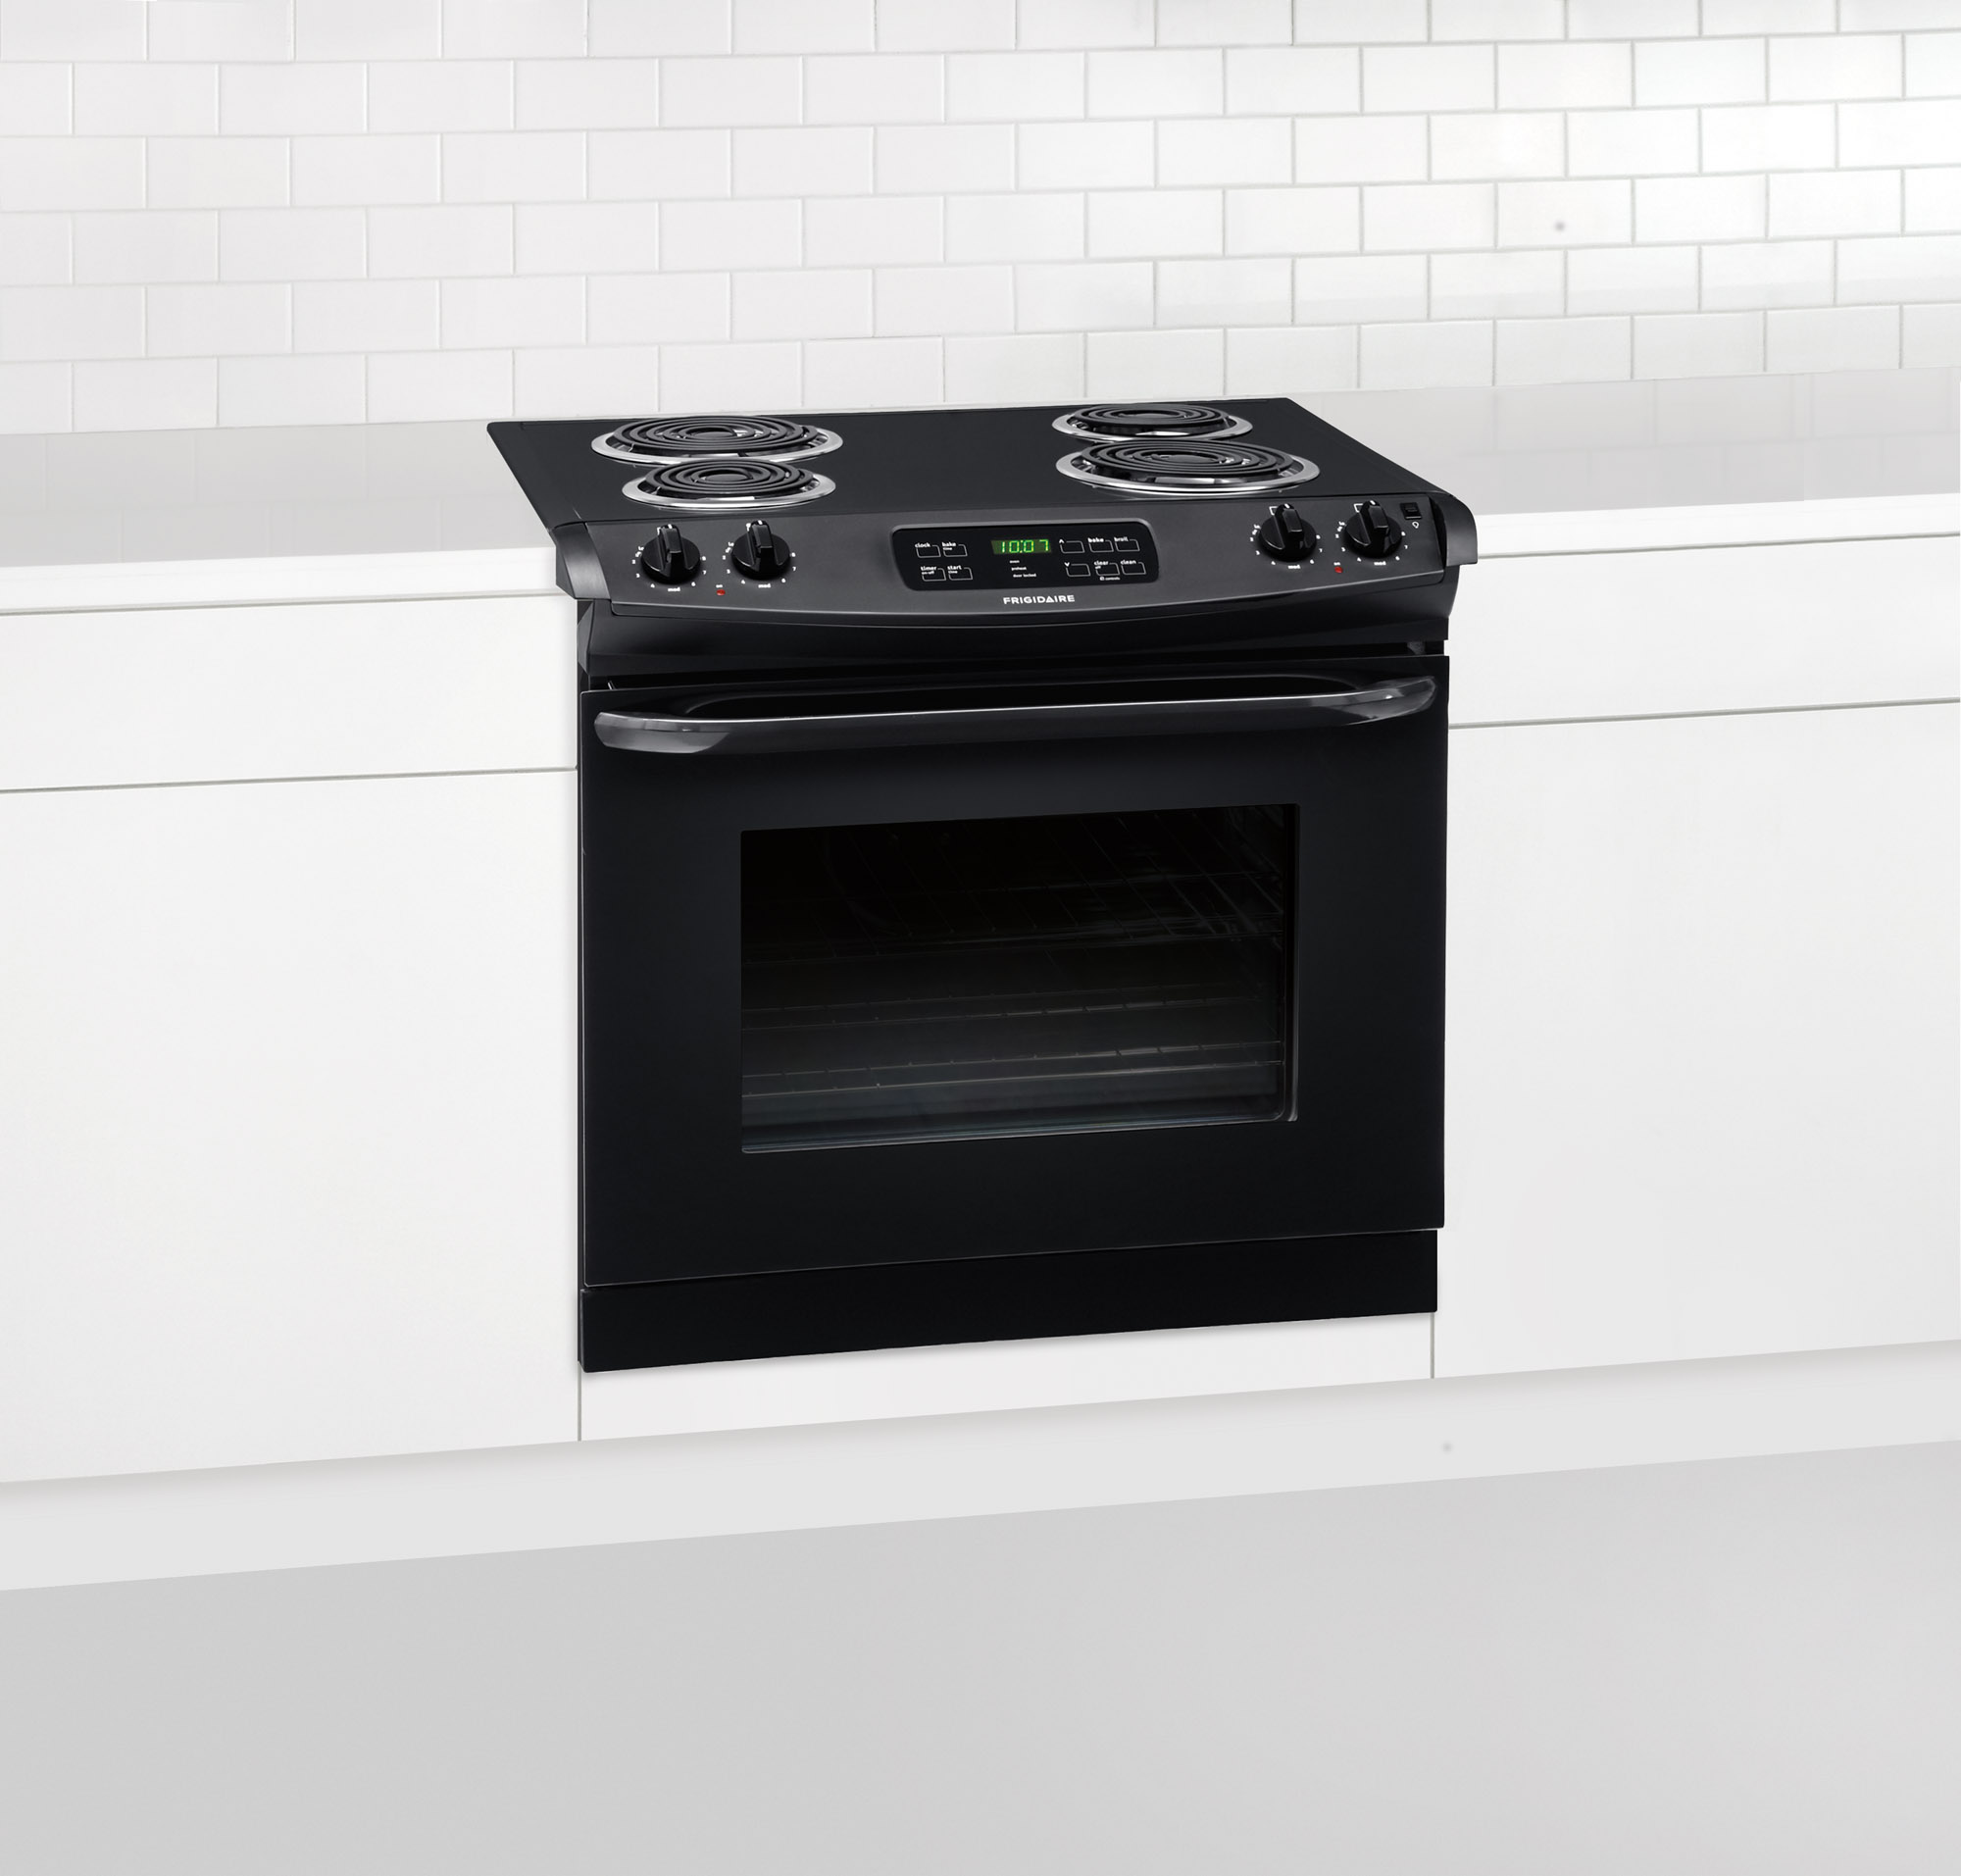 "Frigidaire FFED3015PB 30"" Drop-In Electric Range - Black"